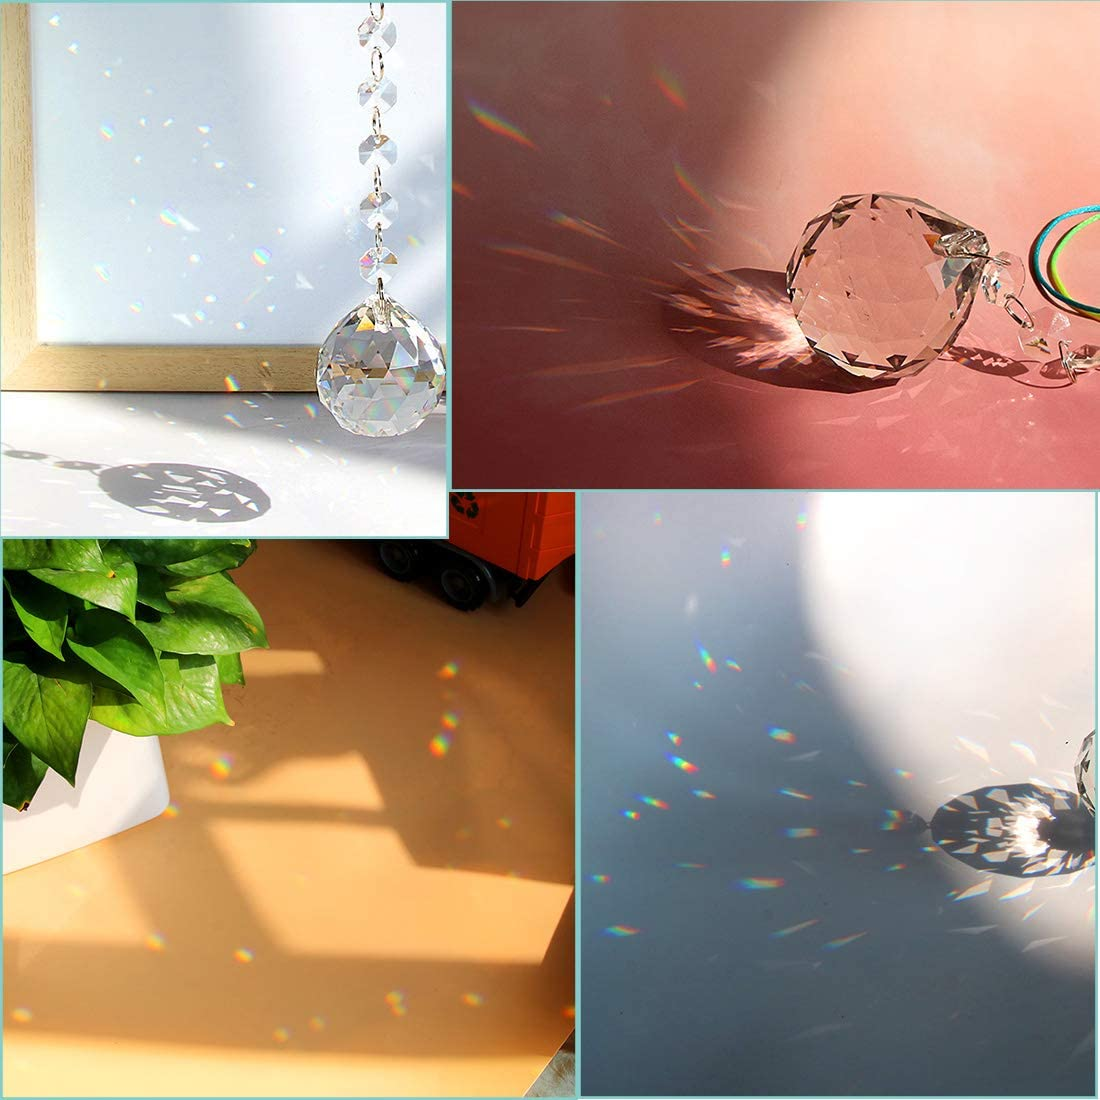 Comidox 2Pcs Silicone Pendant Water Drop Gem Mold Resin Casting Pendant Tool with Hole